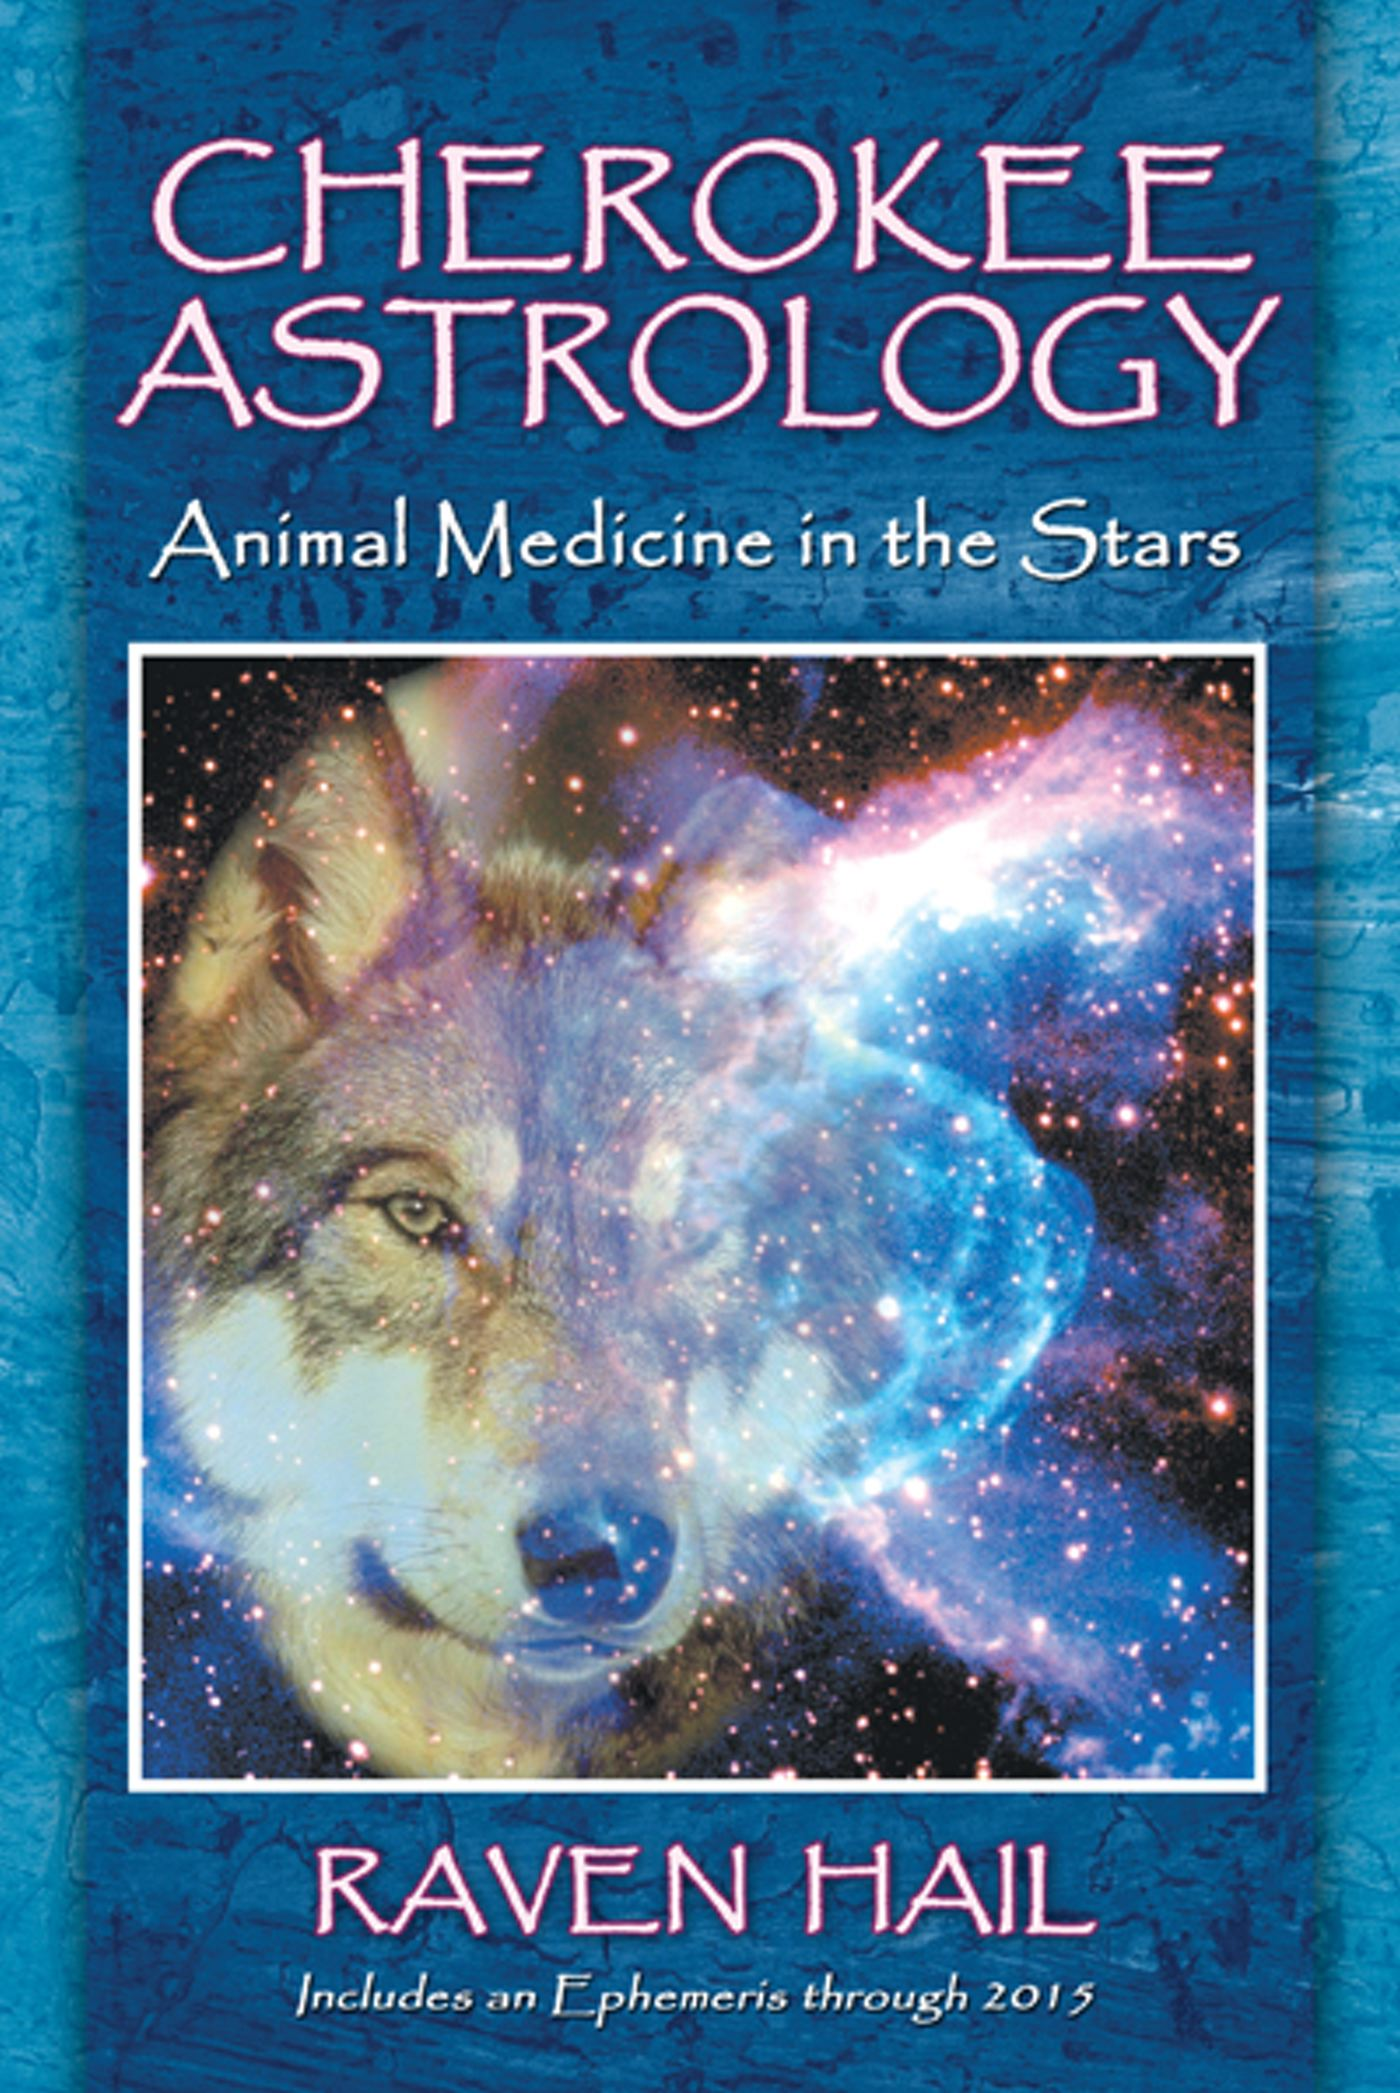 Cherokee-astrology-9781591430872_hr